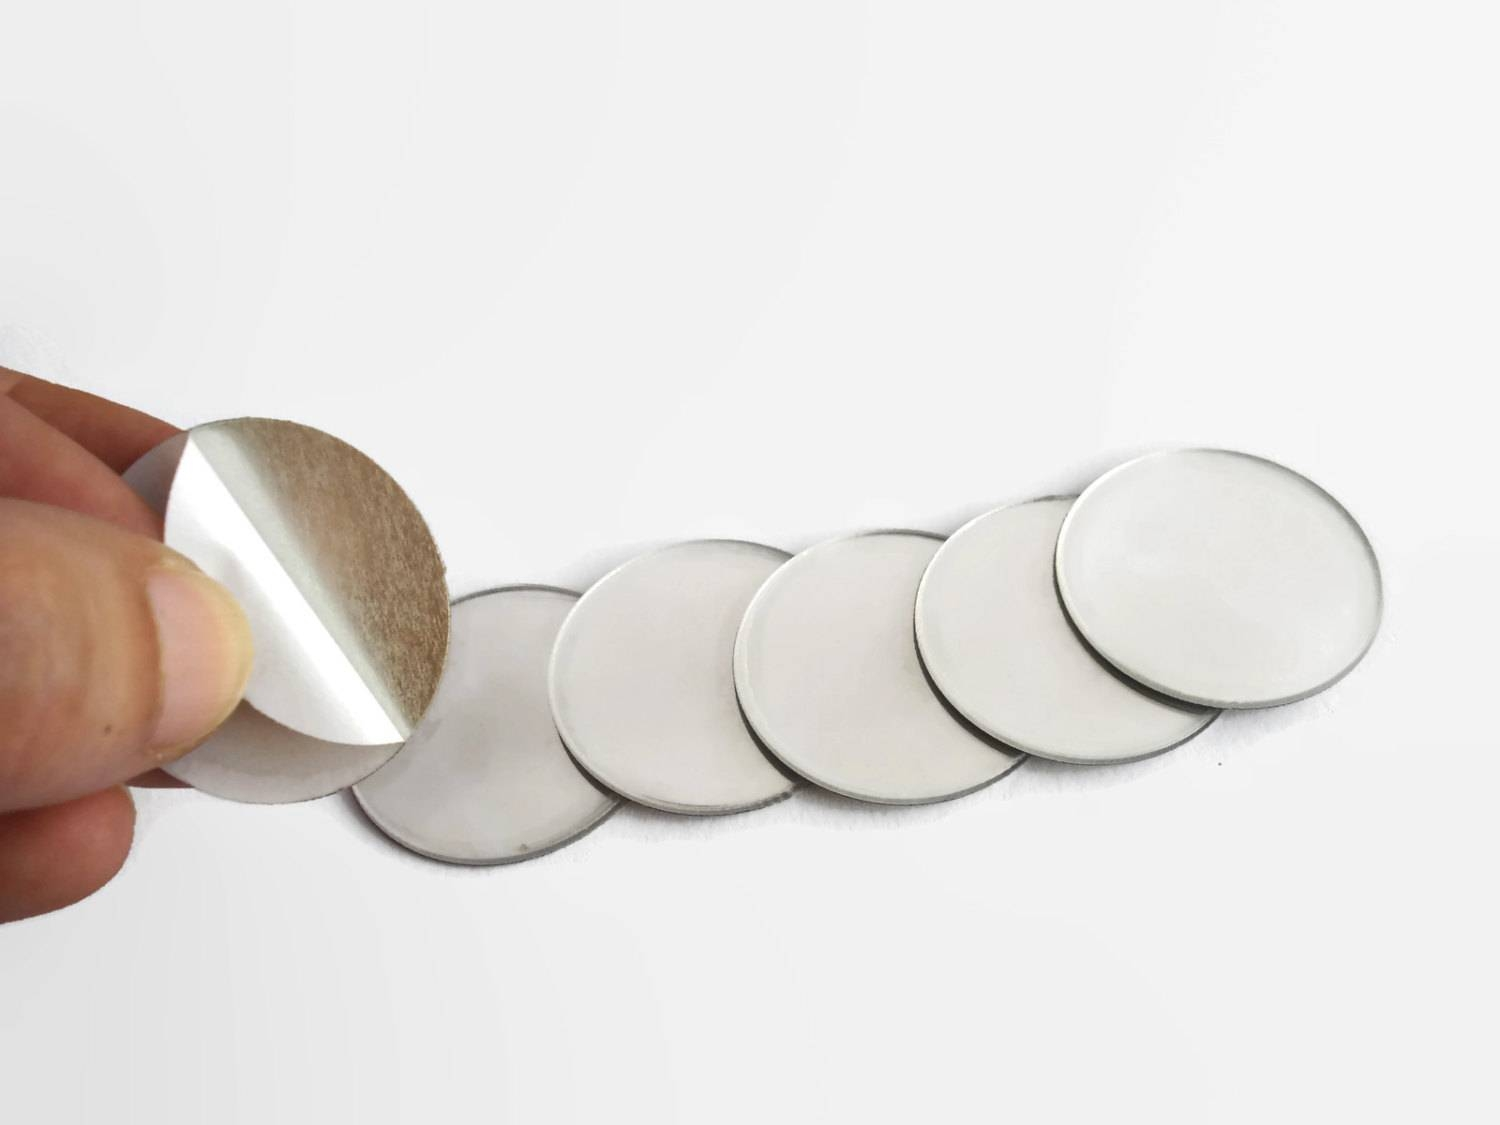 Small Round Mirrors Wall Art – Round Designs Intended For Newest Small Round Mirrors Wall Art (View 9 of 20)